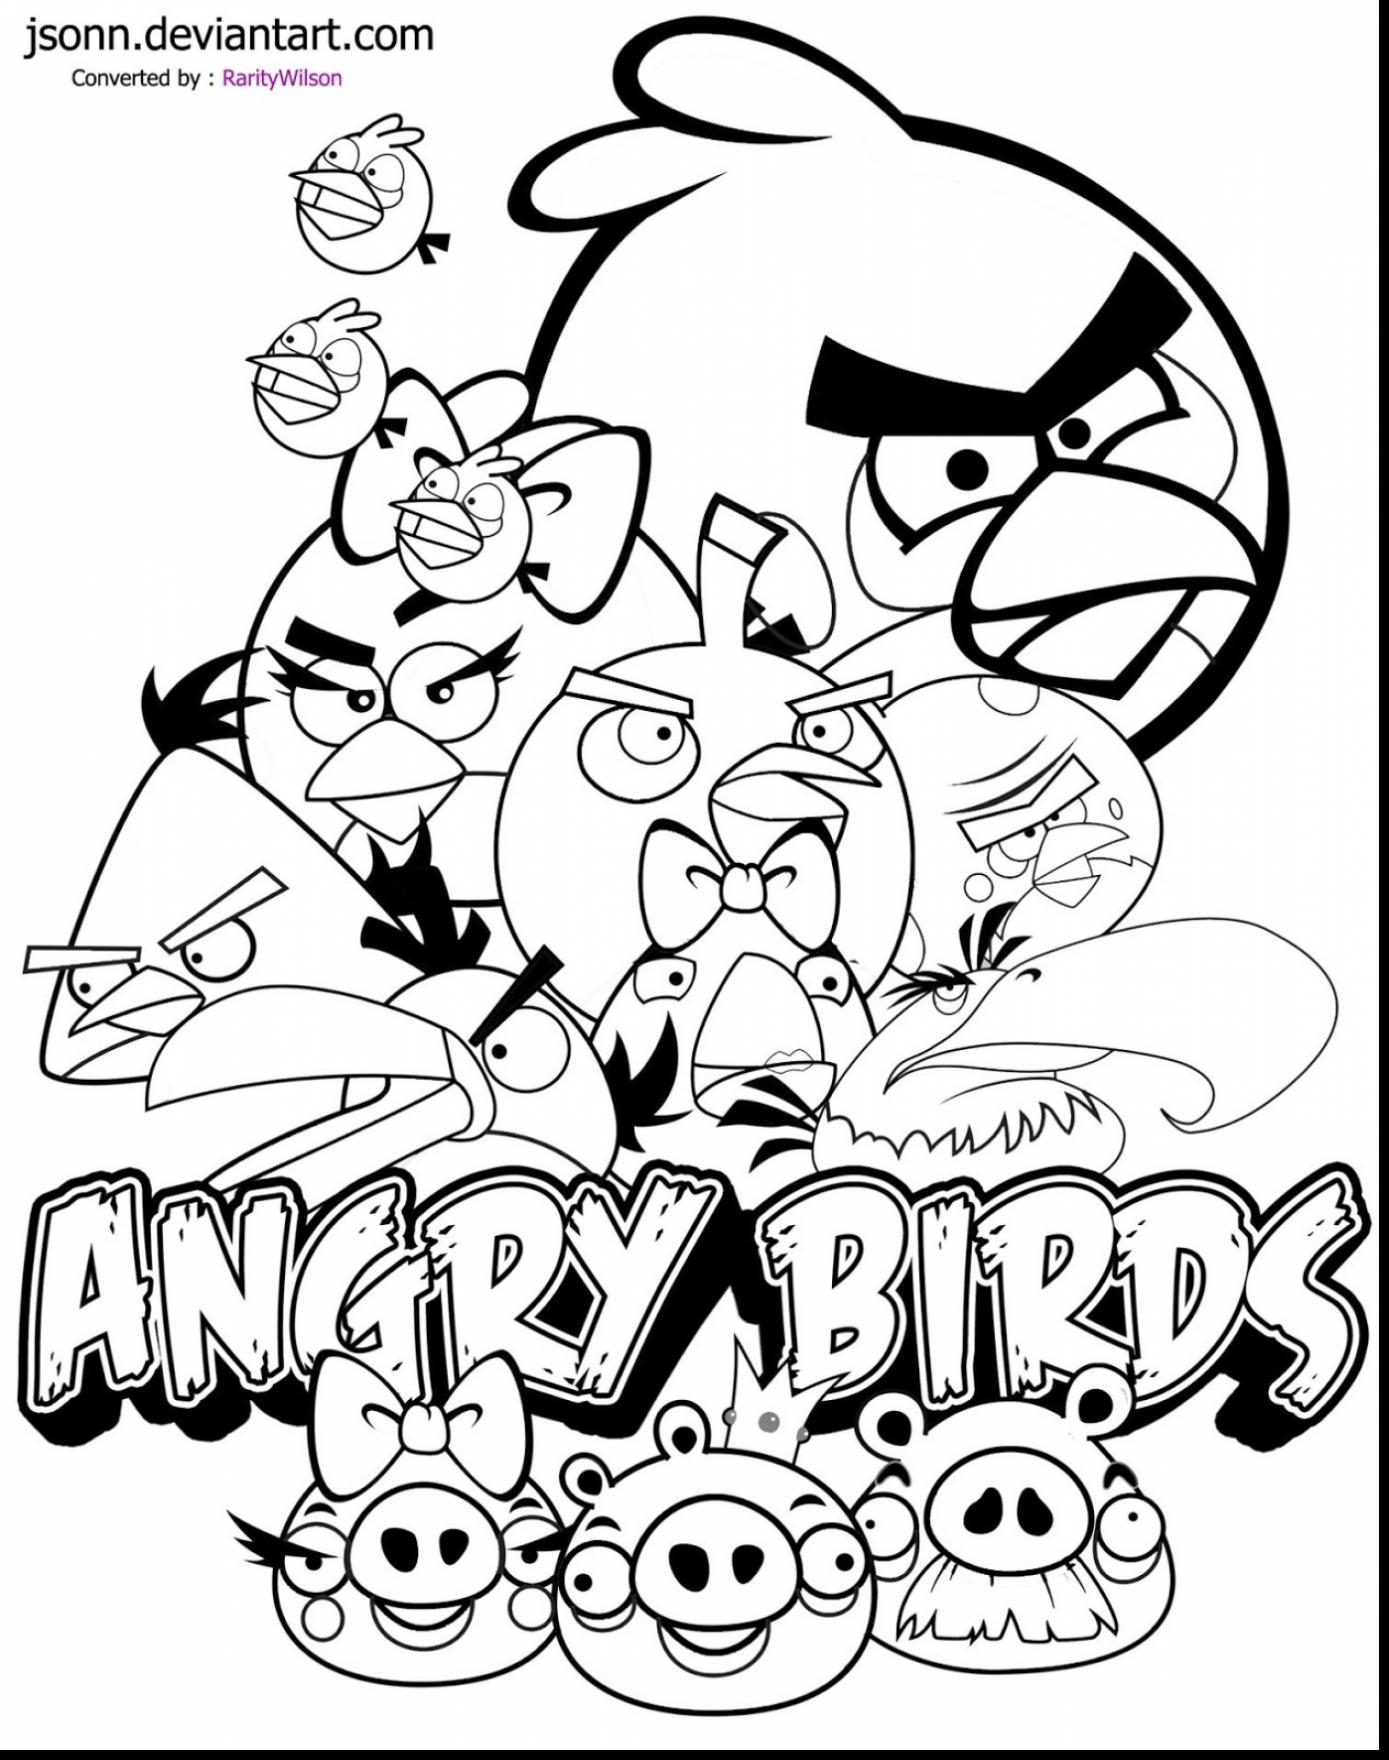 This is a graphic of Angry Bird Printable Coloring Pages with garden